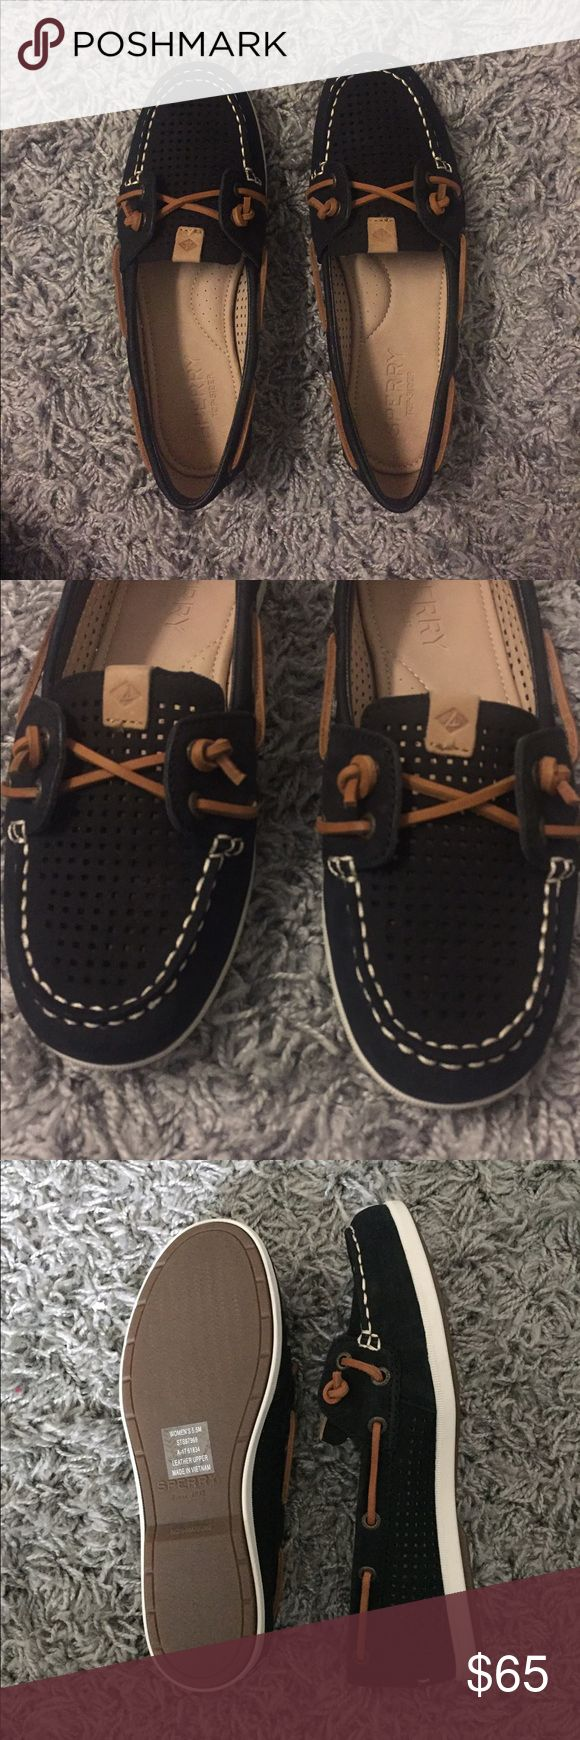 Sperry Black Coil Ivy Boat Shoe- Brand New! These black sperry's have never been worn and are in perfect condition! I love these but they are too small for me. Goes with almost any outfit! Sperry Shoes Flats & Loafers